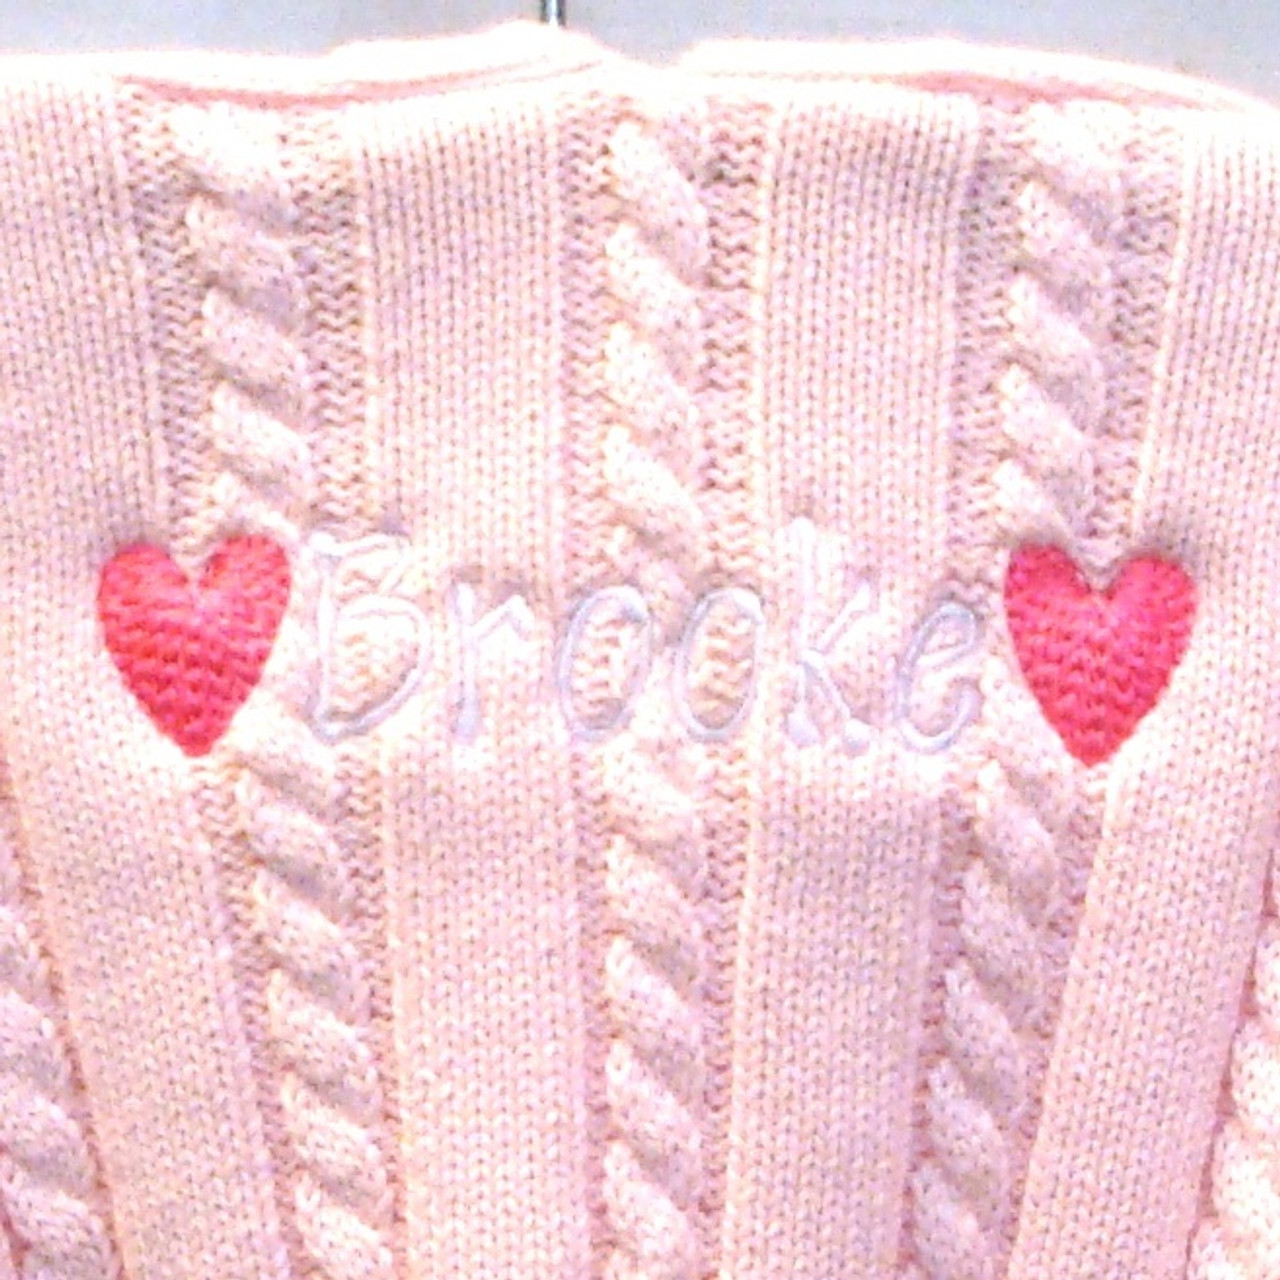 Personalised Embroidered Pink Heart Shawl Blanket Gift with Name Embroidery